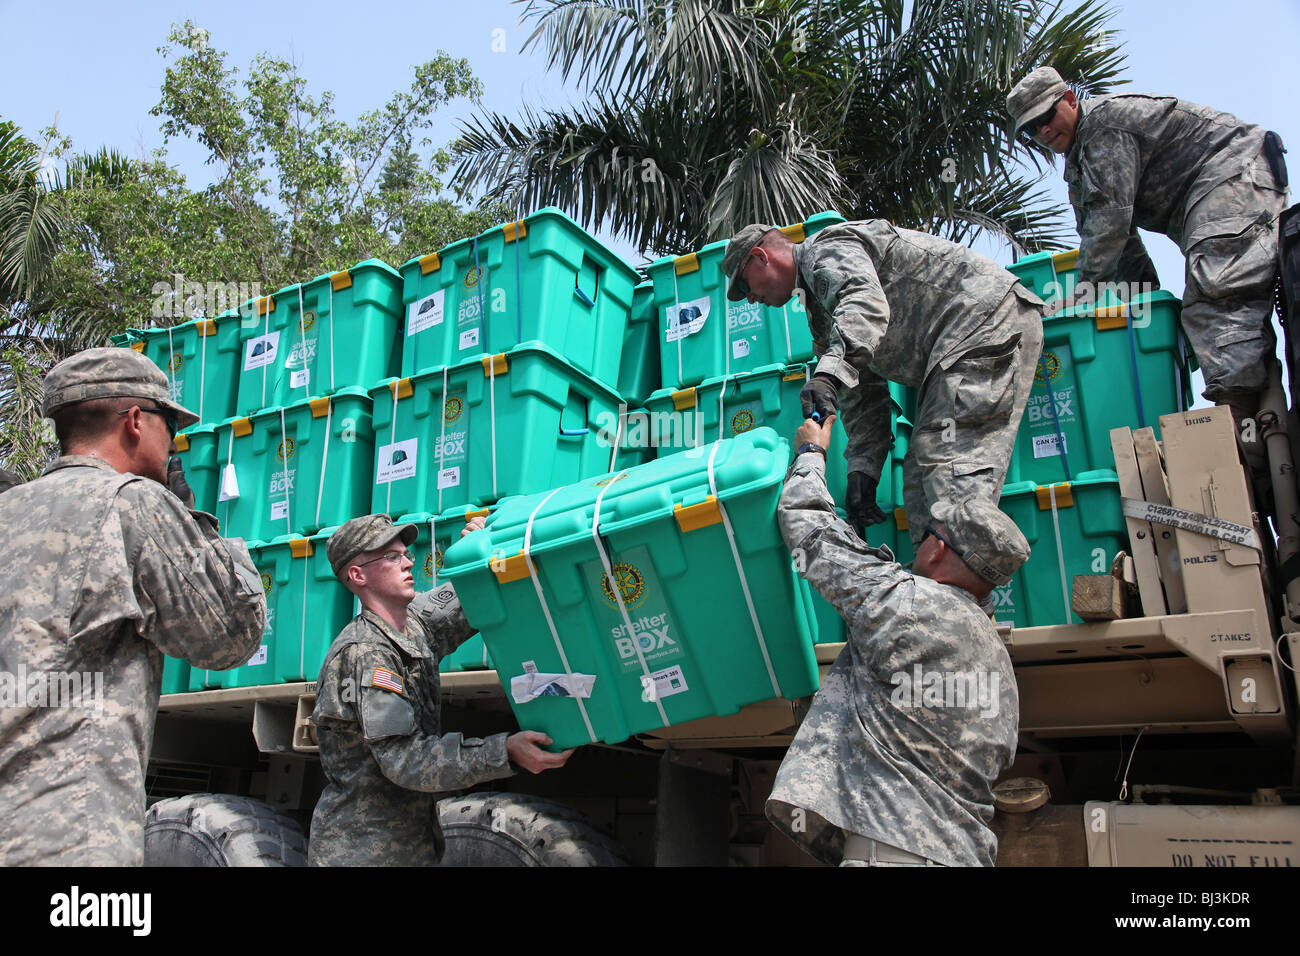 Soldiers of the 82nd Airborne, US Army distribute ShelterBox aid in Port au Prince, Haiti following the earthquake - Stock Image